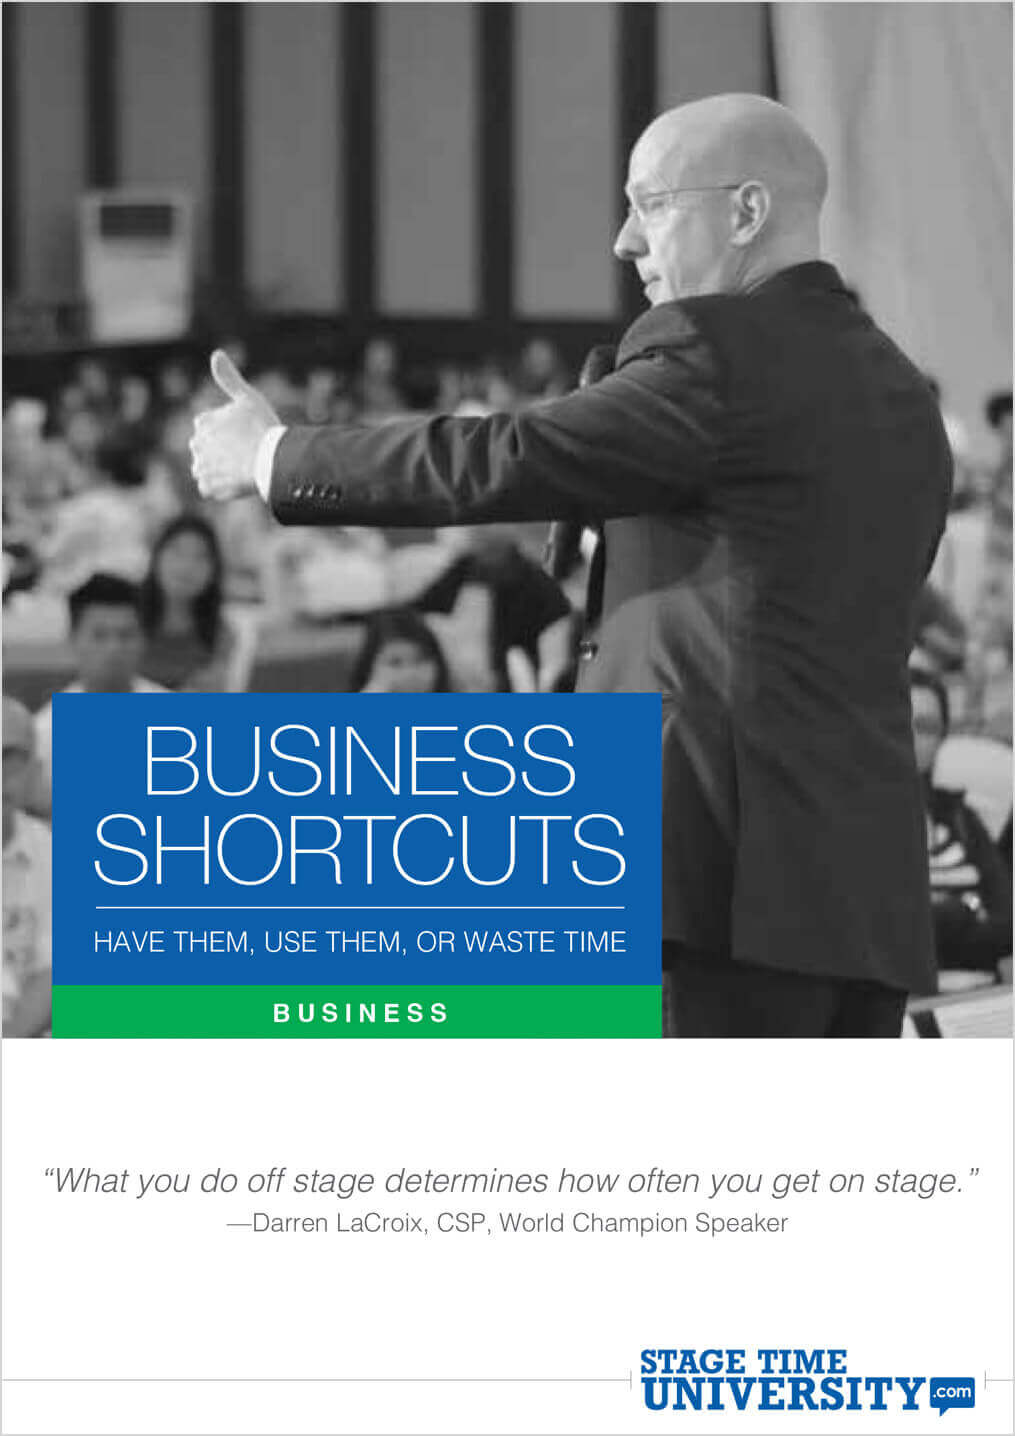 Business Shortcuts